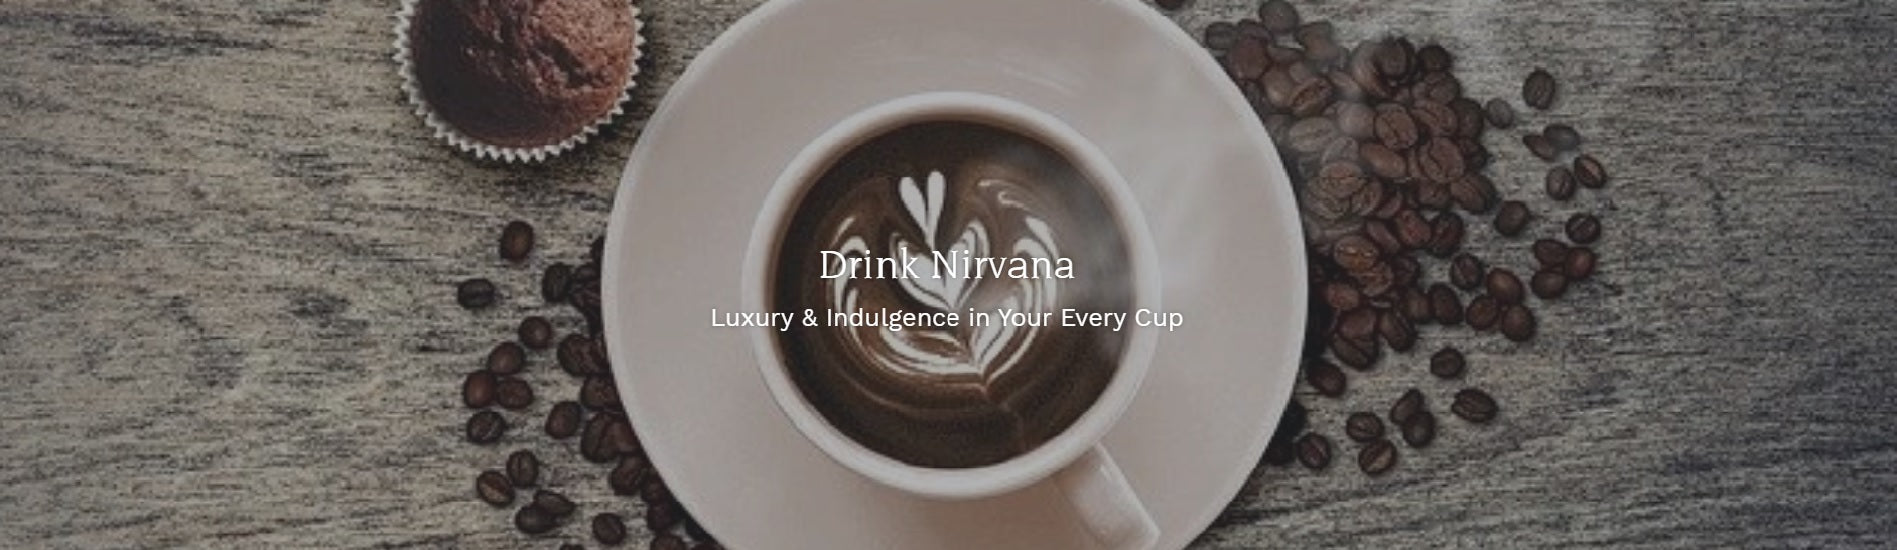 Luxury and Indulgence in Your Every Cup